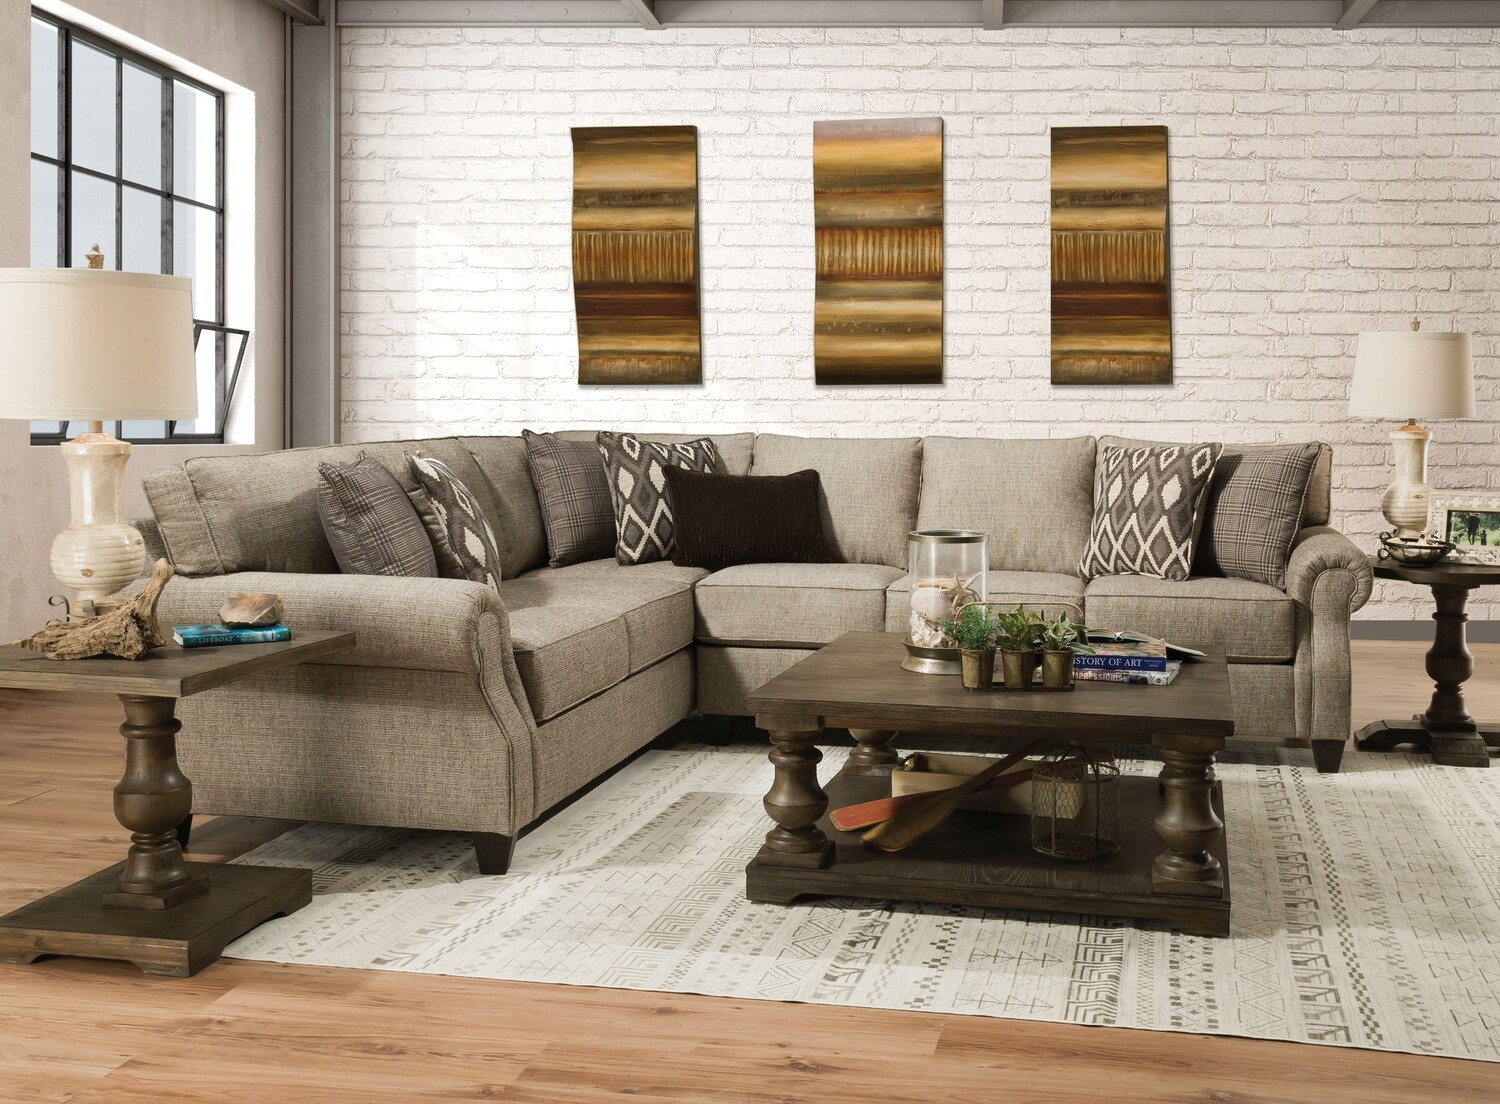 8010 2 Pc Sectional in O'Connor Clove $1089